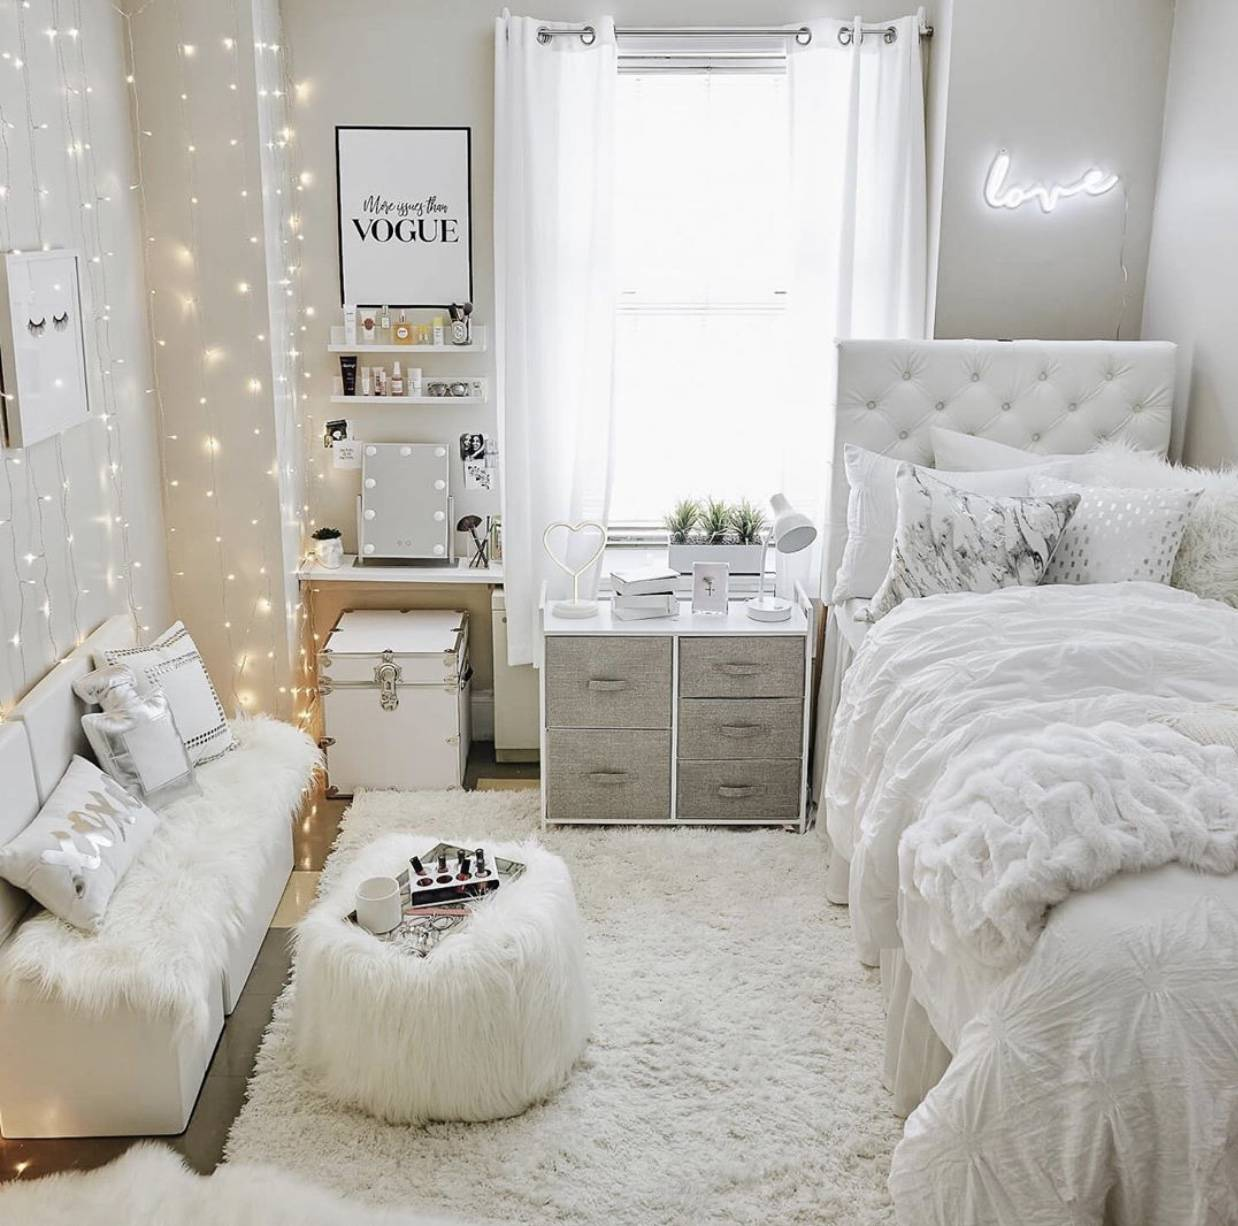 VSCO Room Ideas: How to Create a Cute Vsco Room - The Pink ... on Simple But Cute Room Ideas  id=45458